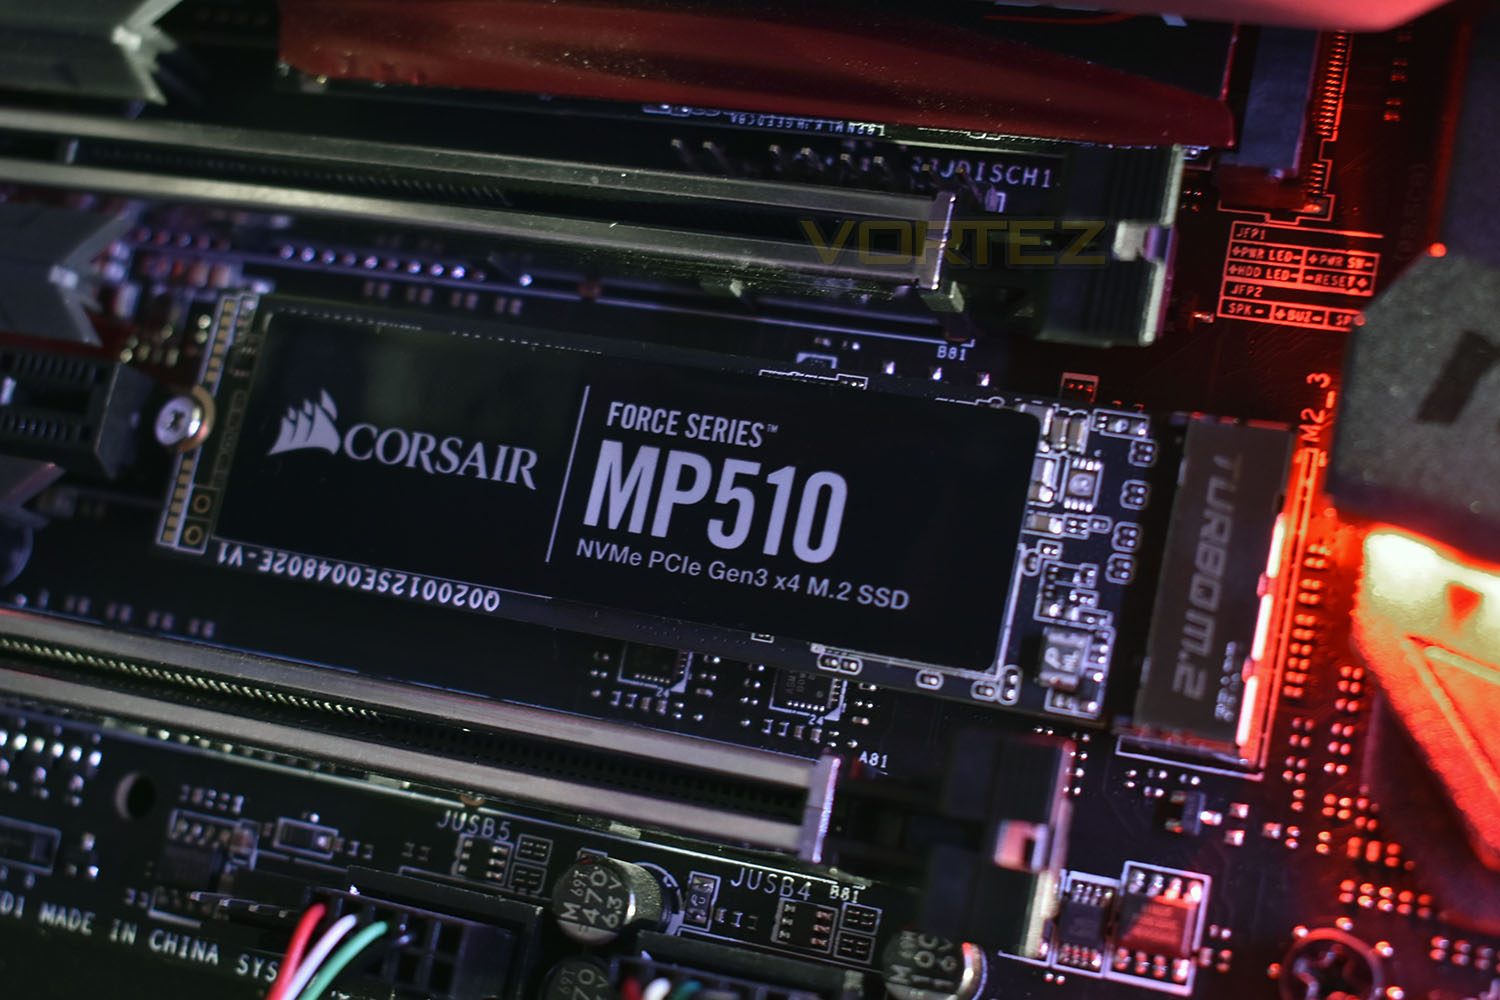 Corsair MP510 Review - Introduction